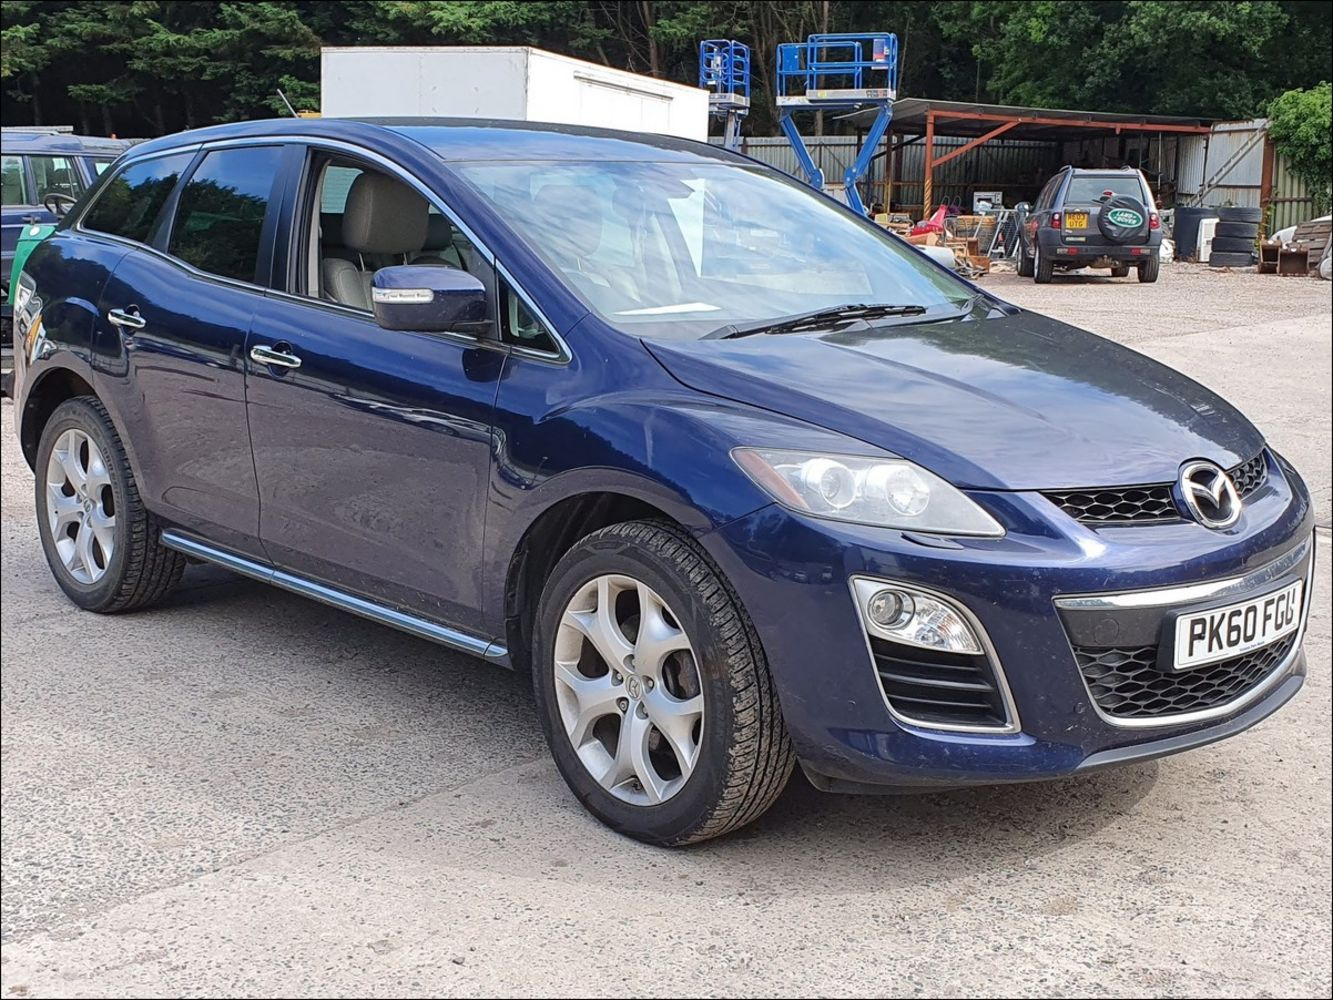 Exeter Car & Commercial Vehicle Auction. Closes from 2pm Wednesday 12th August 2020